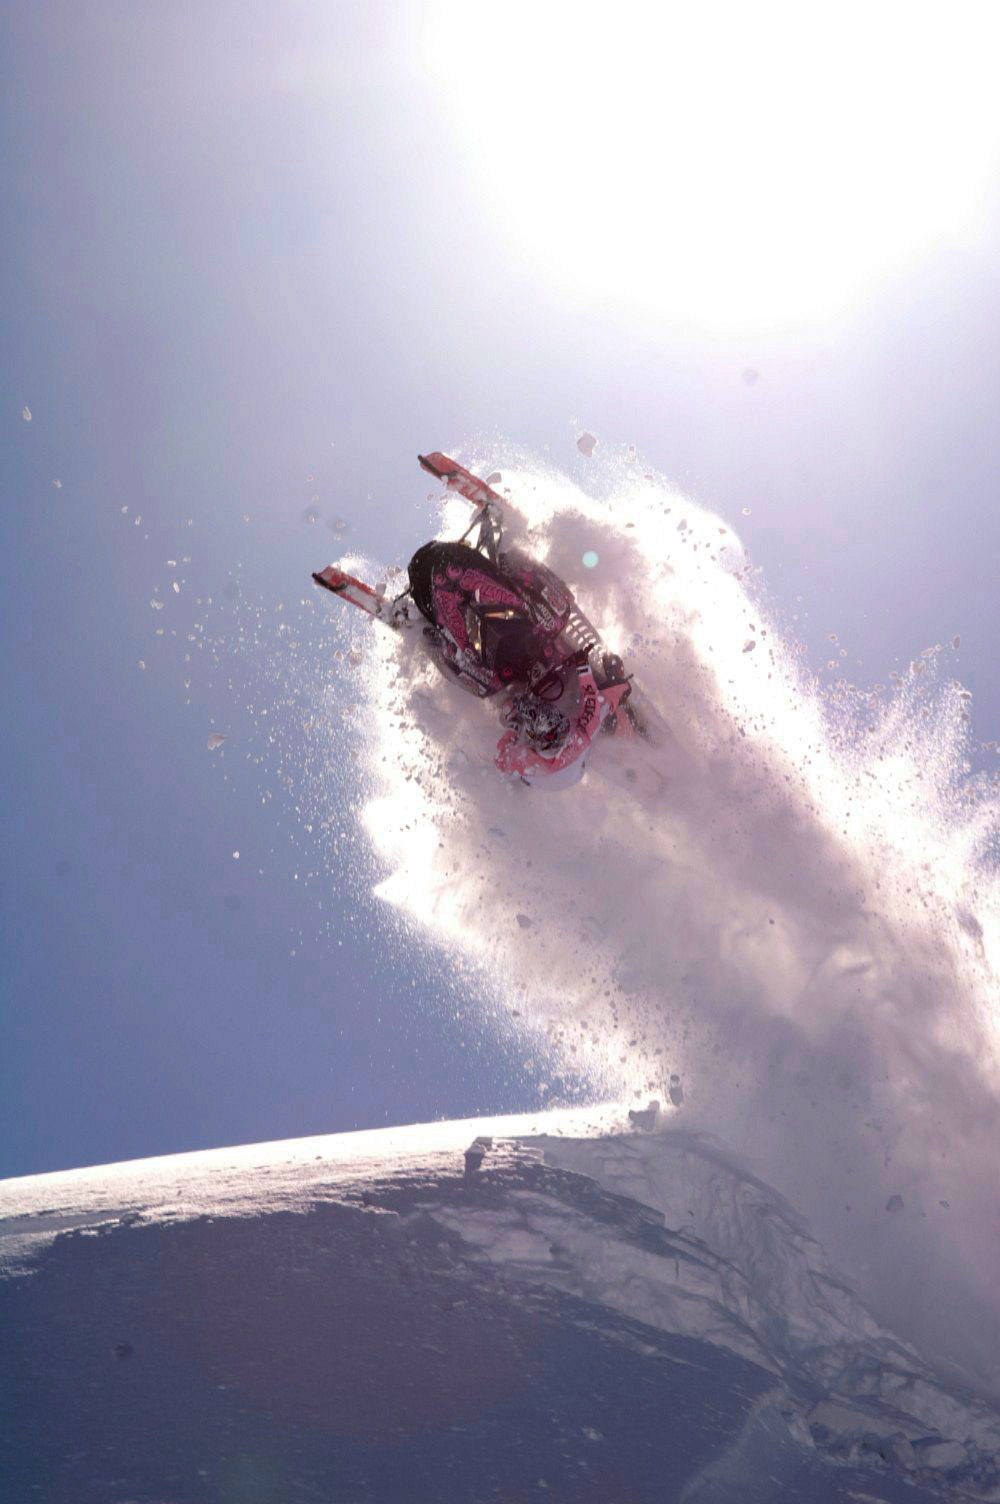 eaeddbdaedaeee-snowmobiles-extreme-sports-wallpaper-wp440724